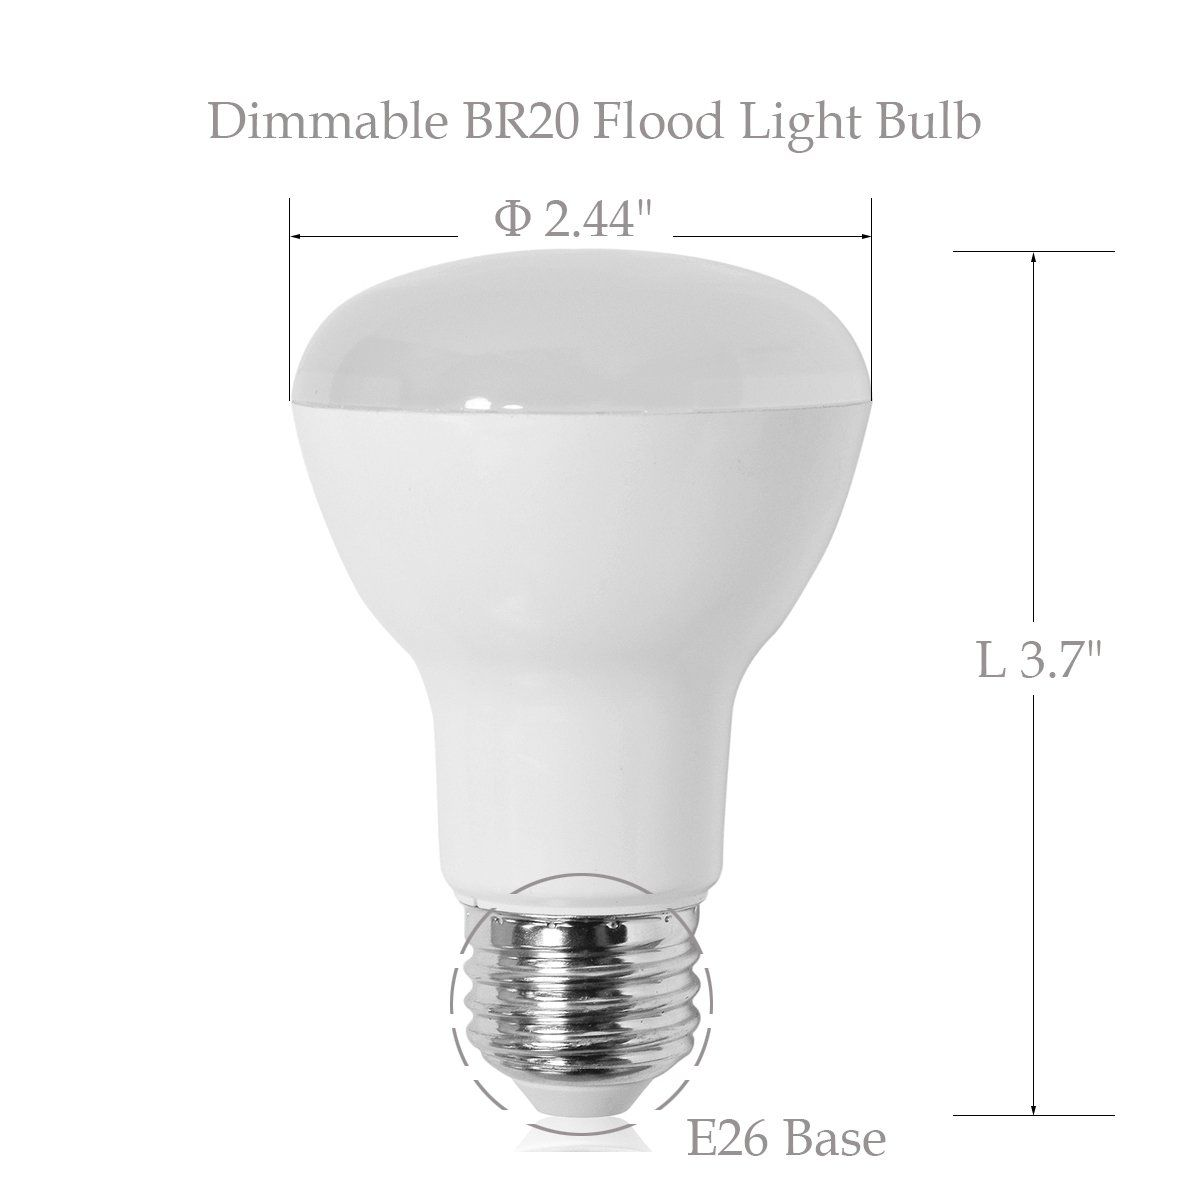 4pack Br20 Wide Flood Light Bulbd 2 44l 3 7 120a Beam Angle7w 50 Watt Equivalent Daylight 5000k525 Lumens E26 Medium Base Dimmabl In 2020 Flood Lights Light Bulb Bulb